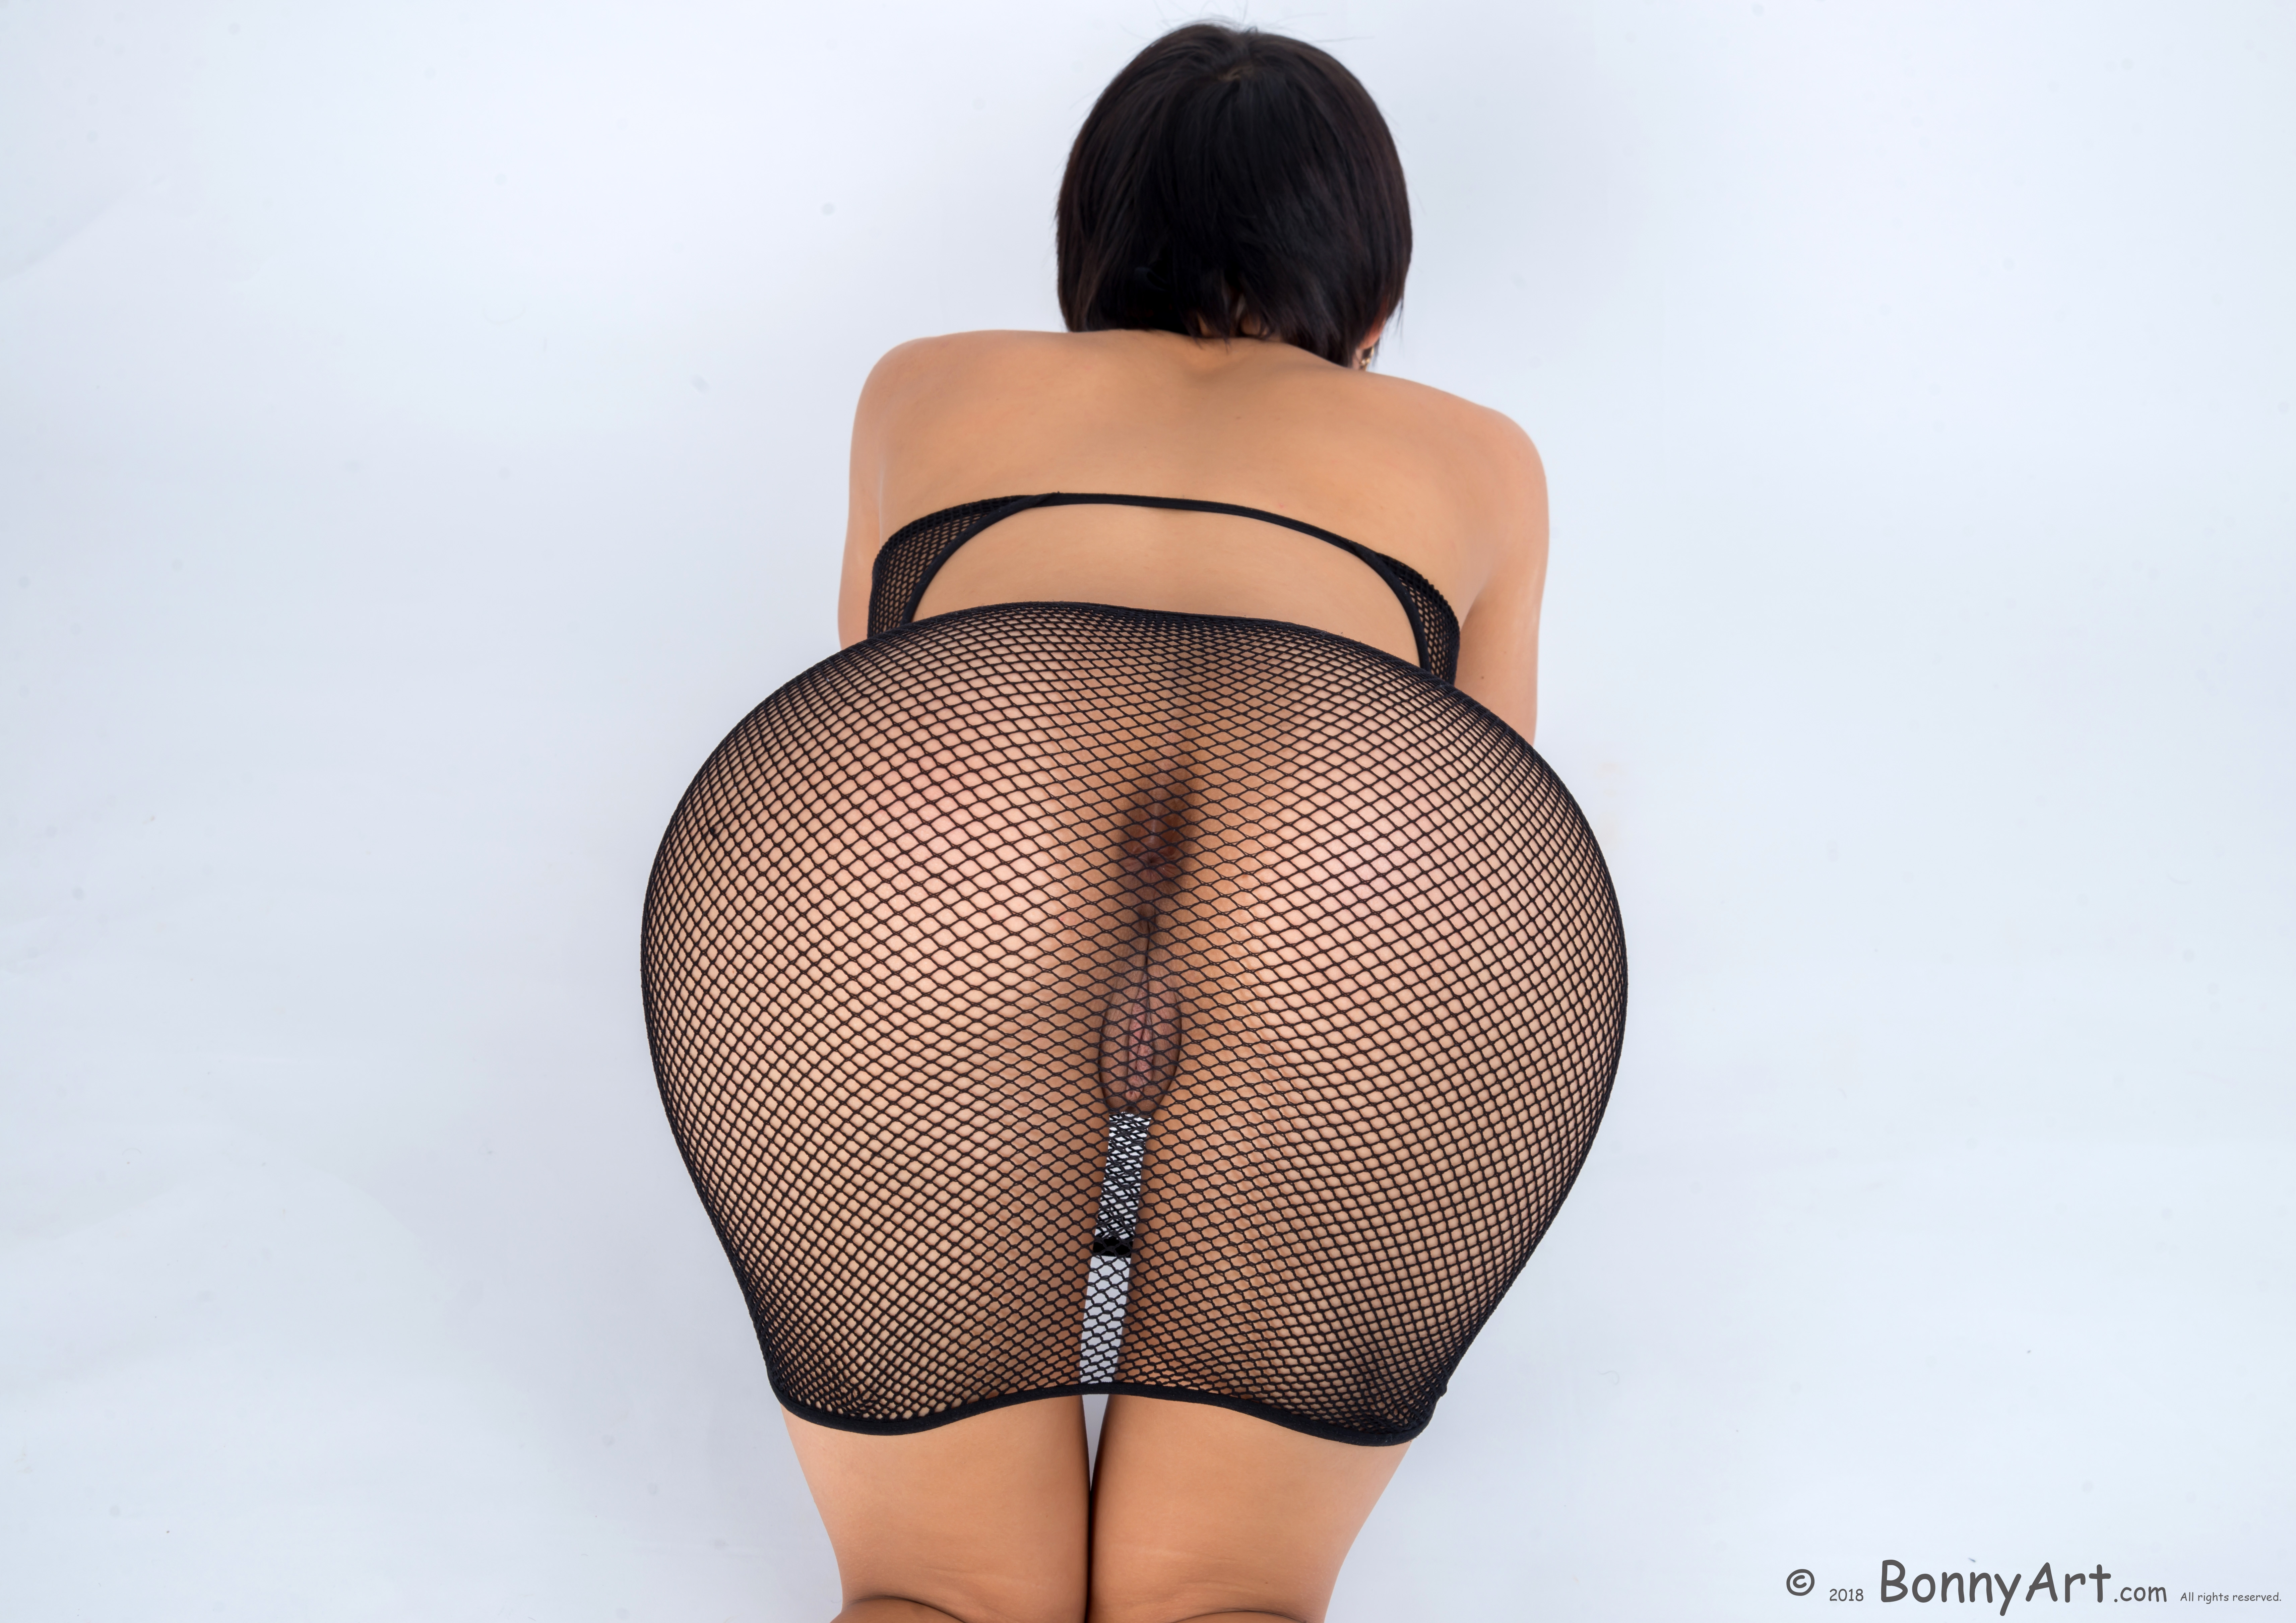 On all fours Pussy through Sheer Fishnets Dress HD